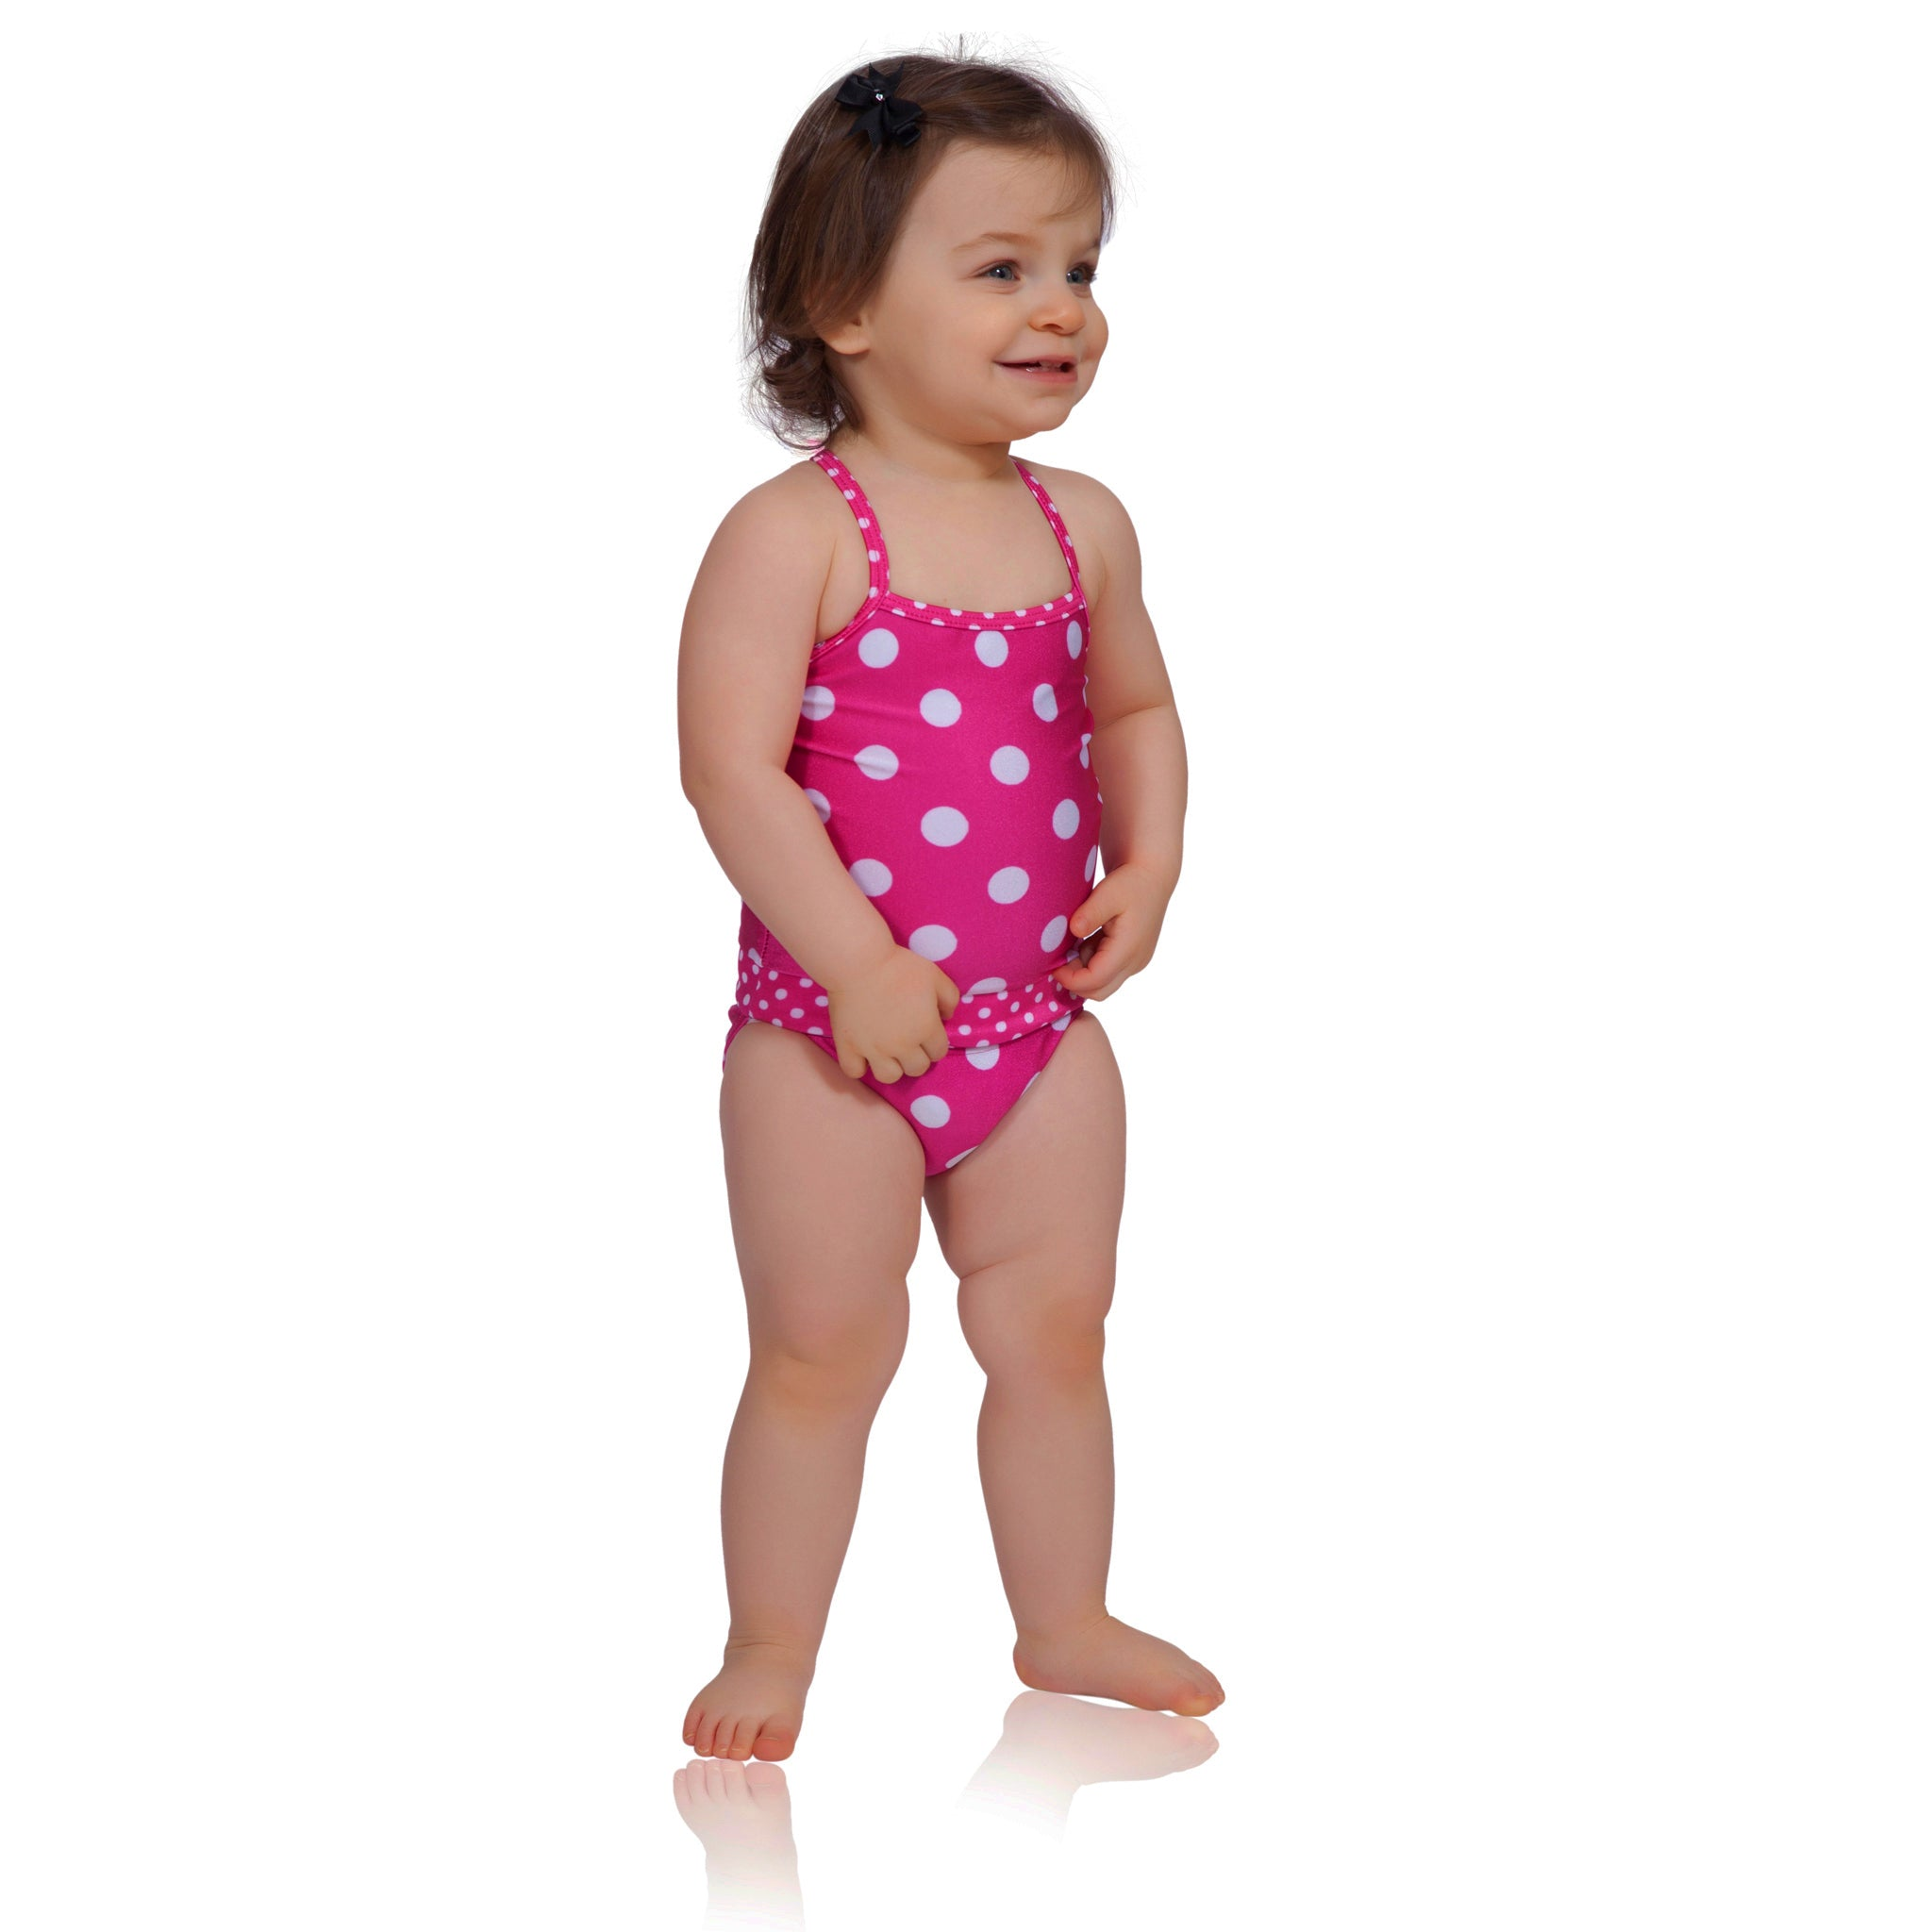 Infant baby girl swimsuit-7498